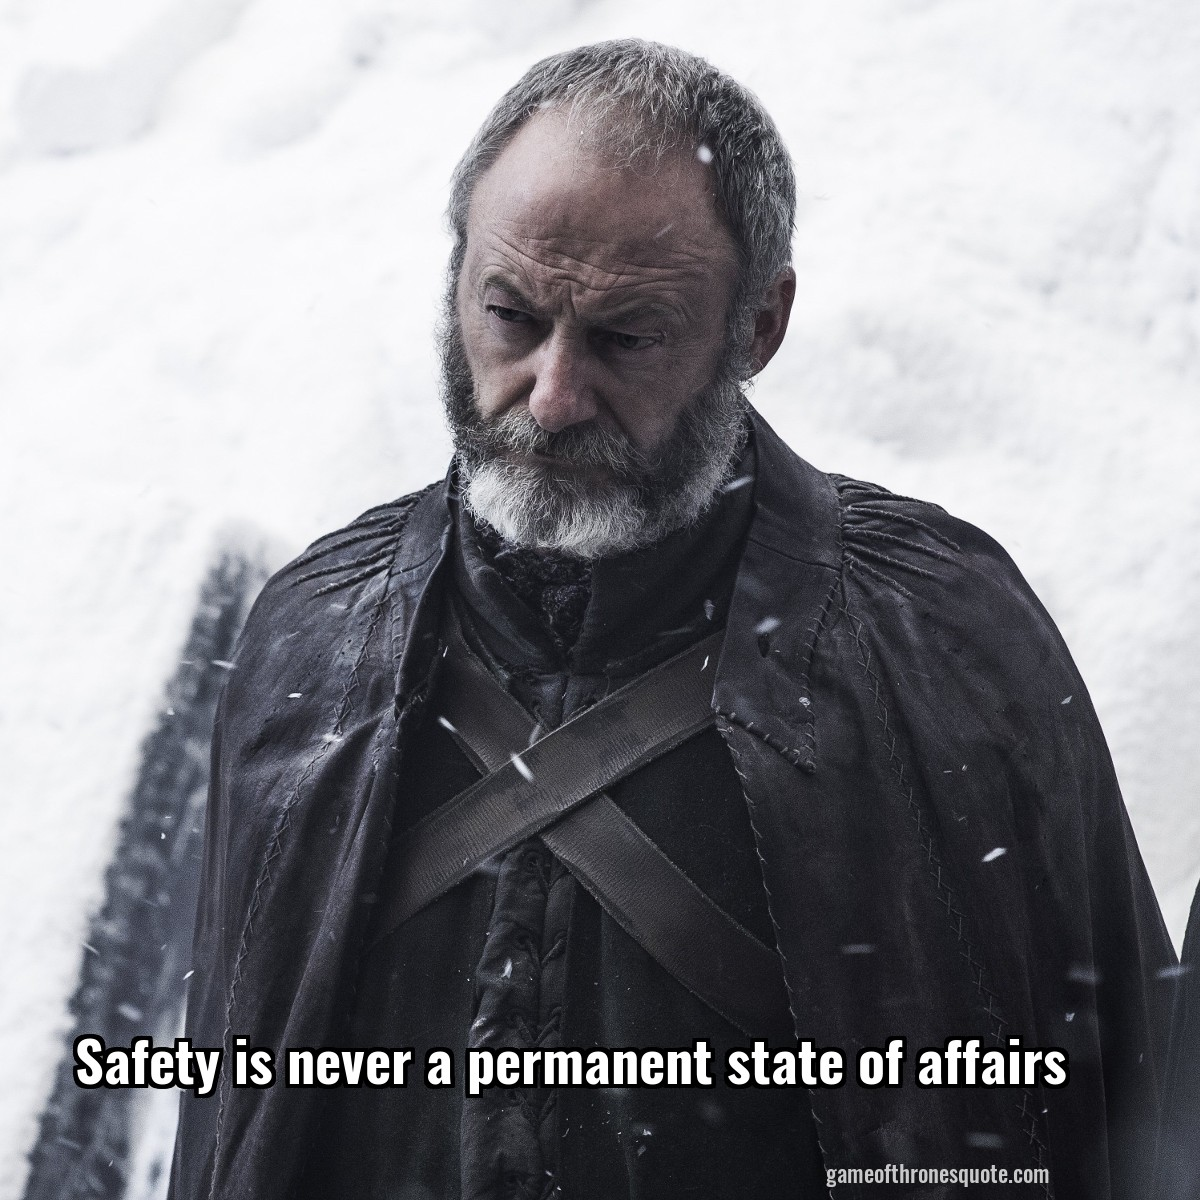 Safety is never a permanent state of affairs